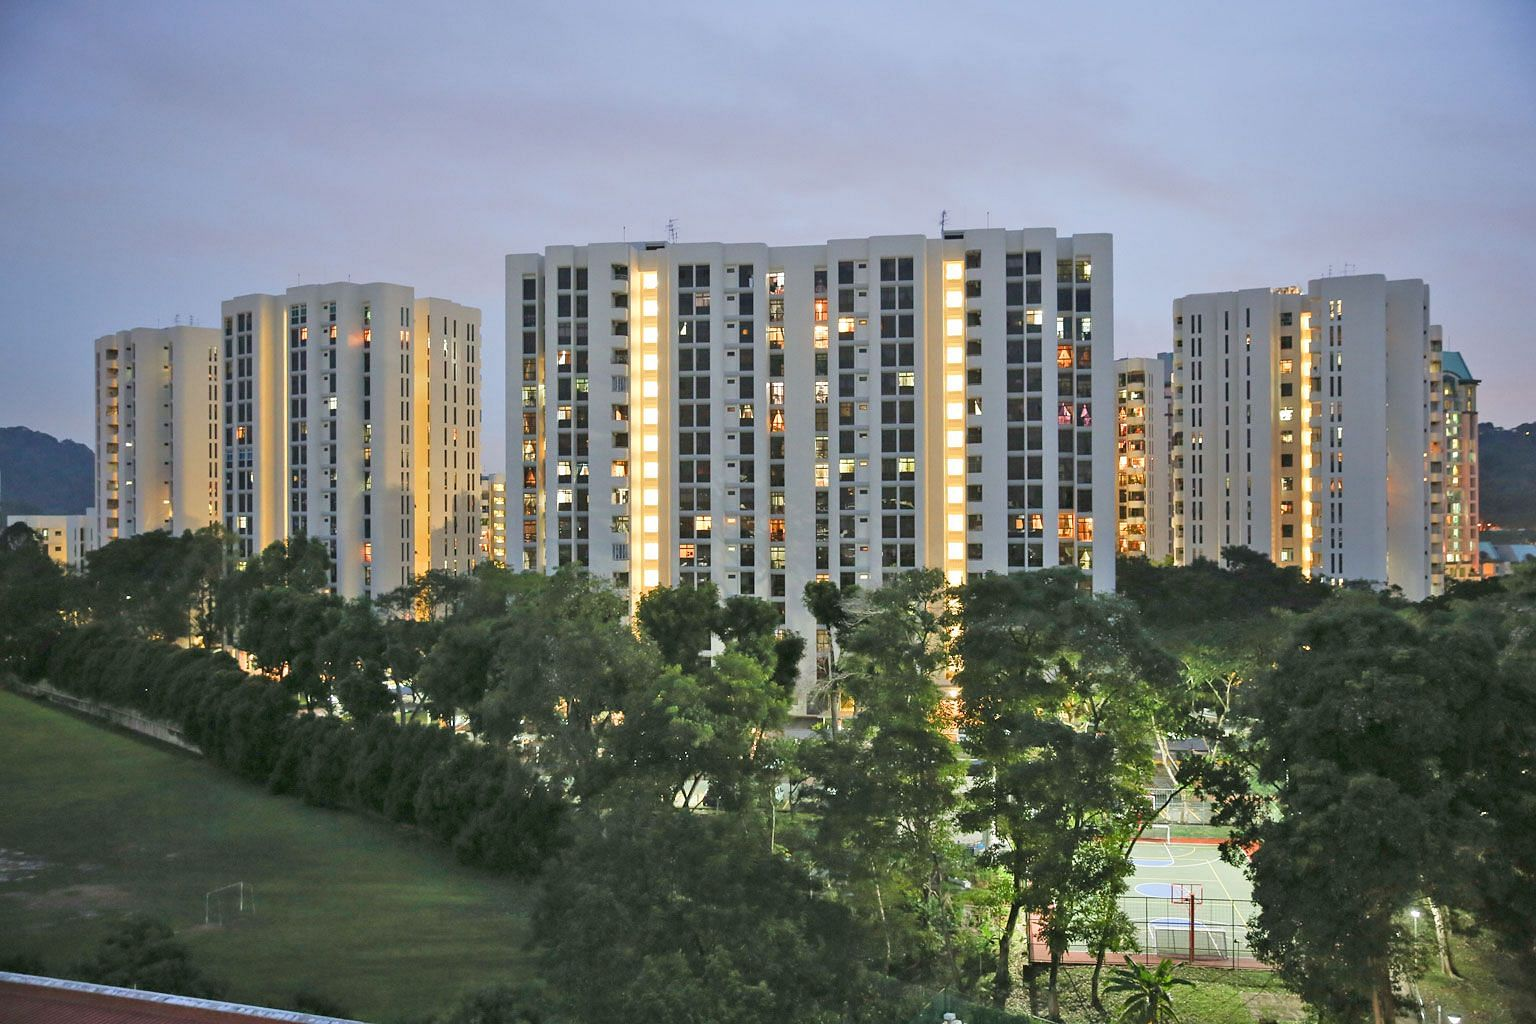 A collective sales committee has been formed at Cashew Heights condominium (above) in Upper Bukit Timah Road, while Royalville in Bukit Timah Road is up for sale at $368 million.